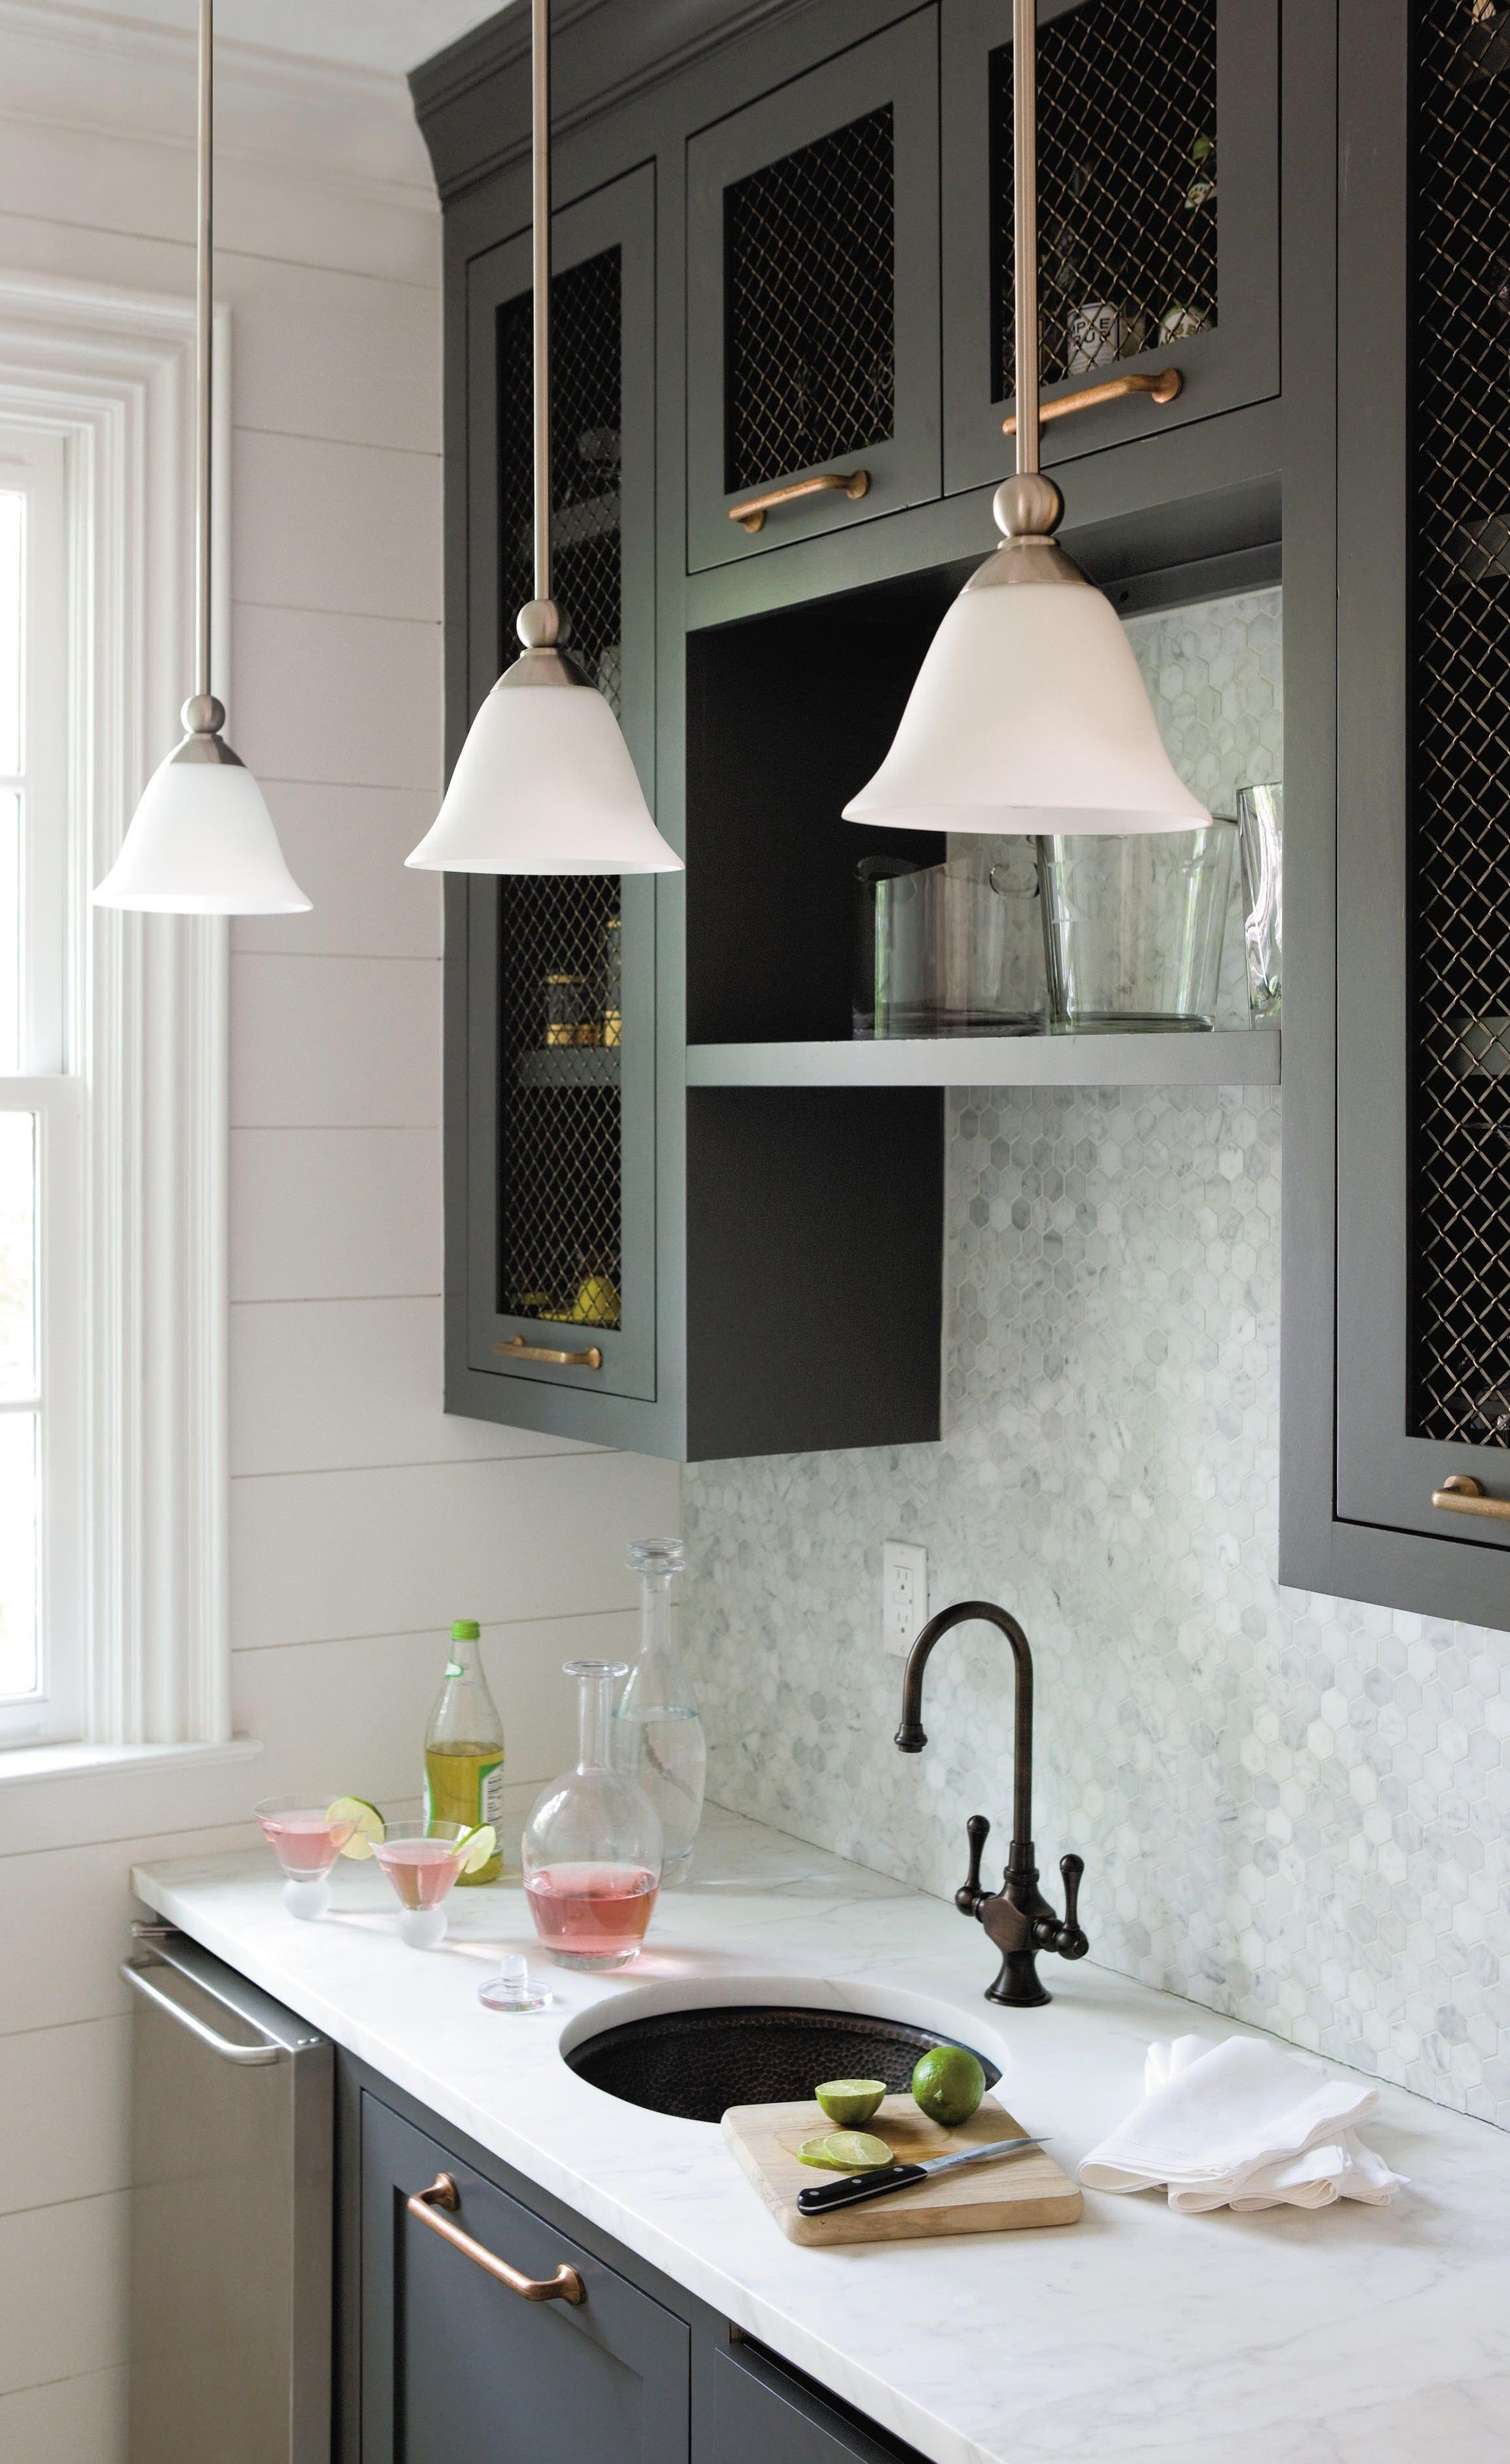 The Bolla Downrod Mini Pendant Features A Brushed Nickel Finish With An Etched Opal Glass Shade Or An Olde Kitchen Remodel Kitchen Inspirations Kitchen Design